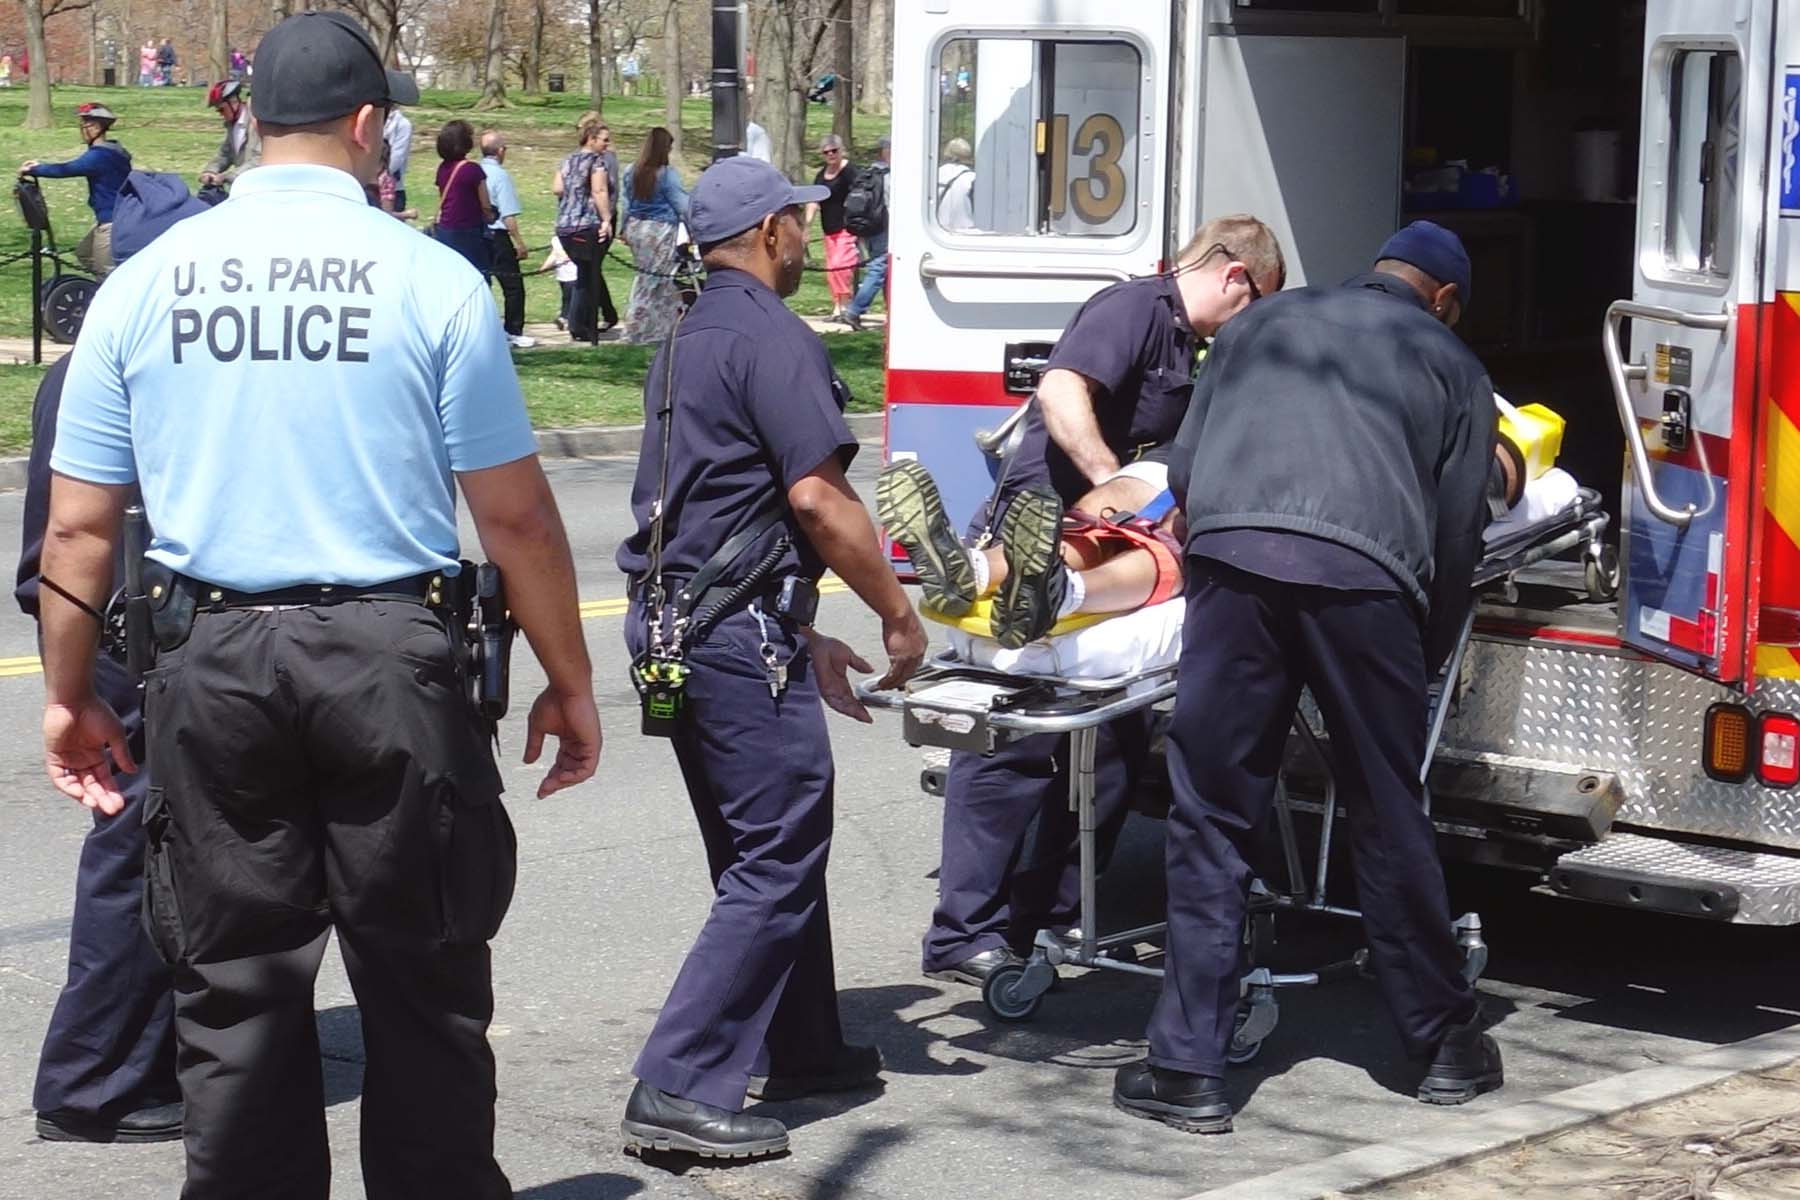 paramedics placing a patient into an ambulance